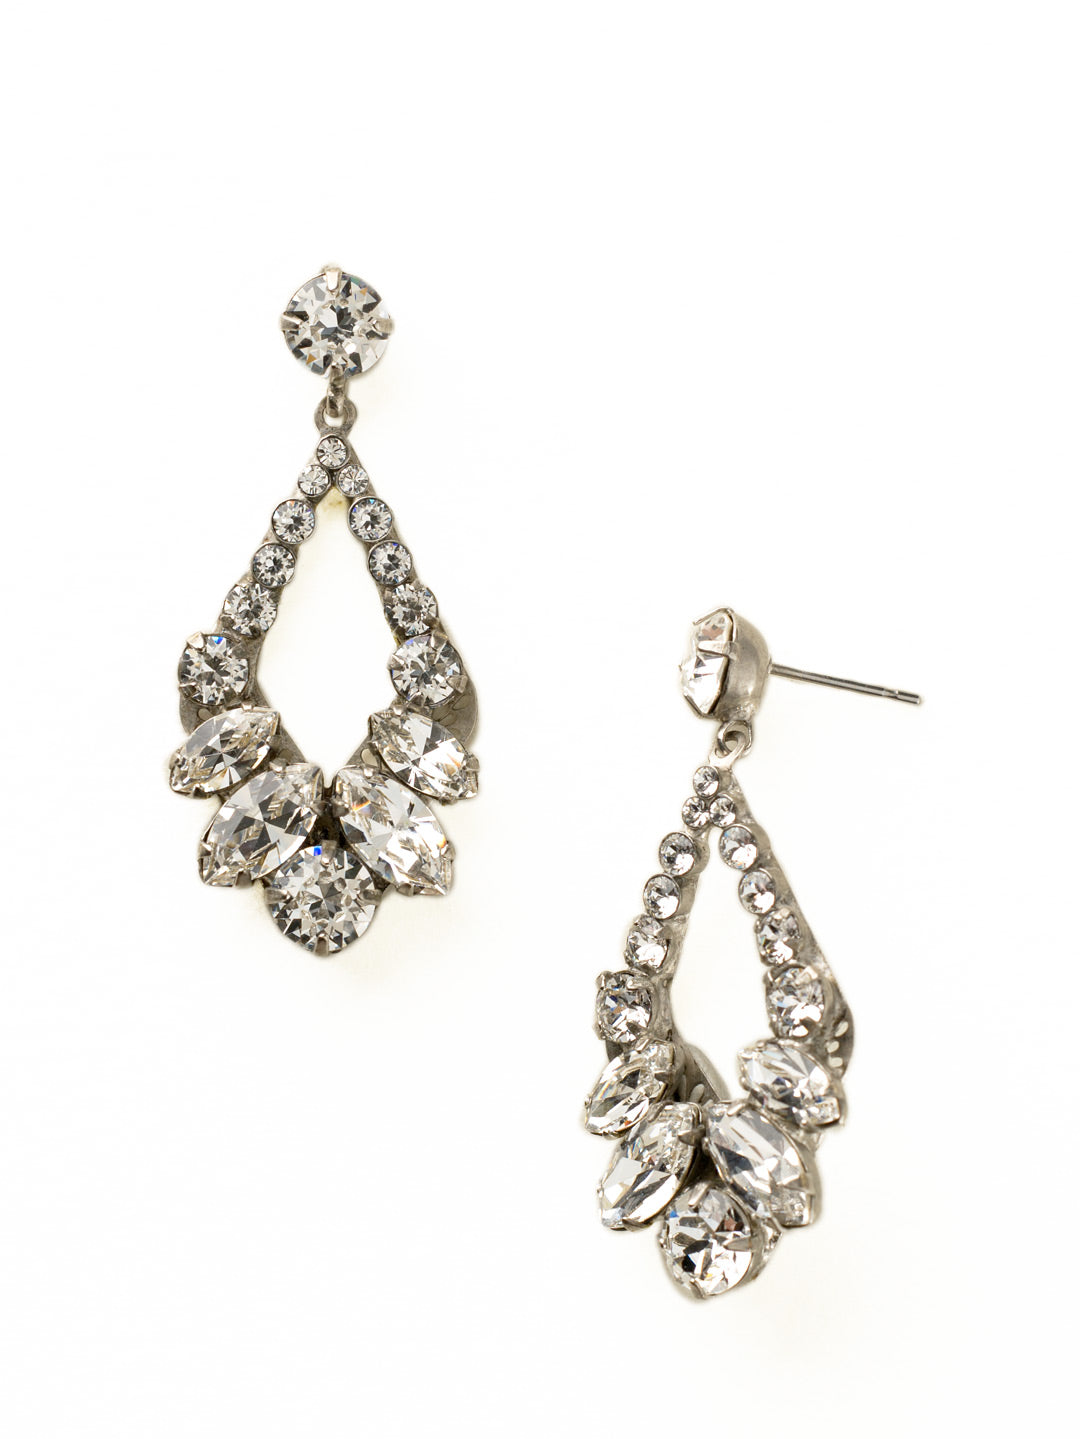 Navette and Round Crystal Adornment Dangle Earrings - EDA53ASCRY